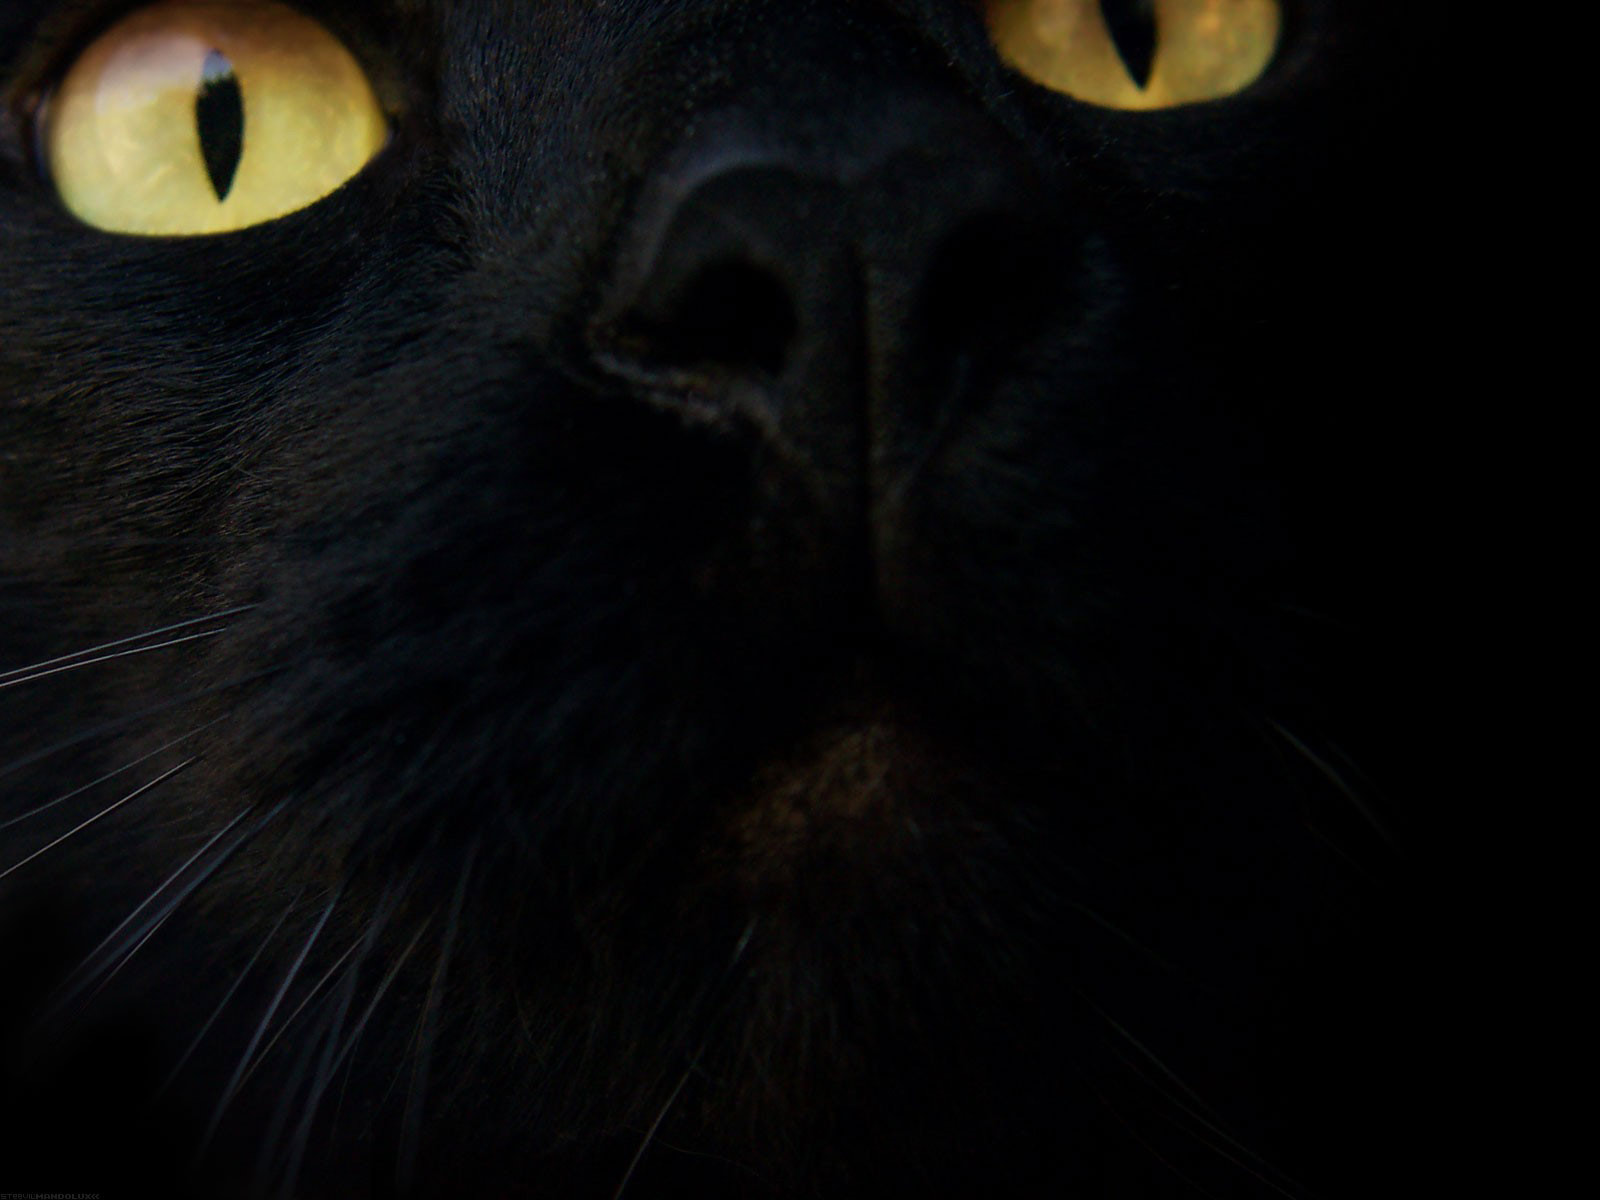 Black+Cat+Wallpaper+Hd+Wallpapers+Backgrounds.jpg